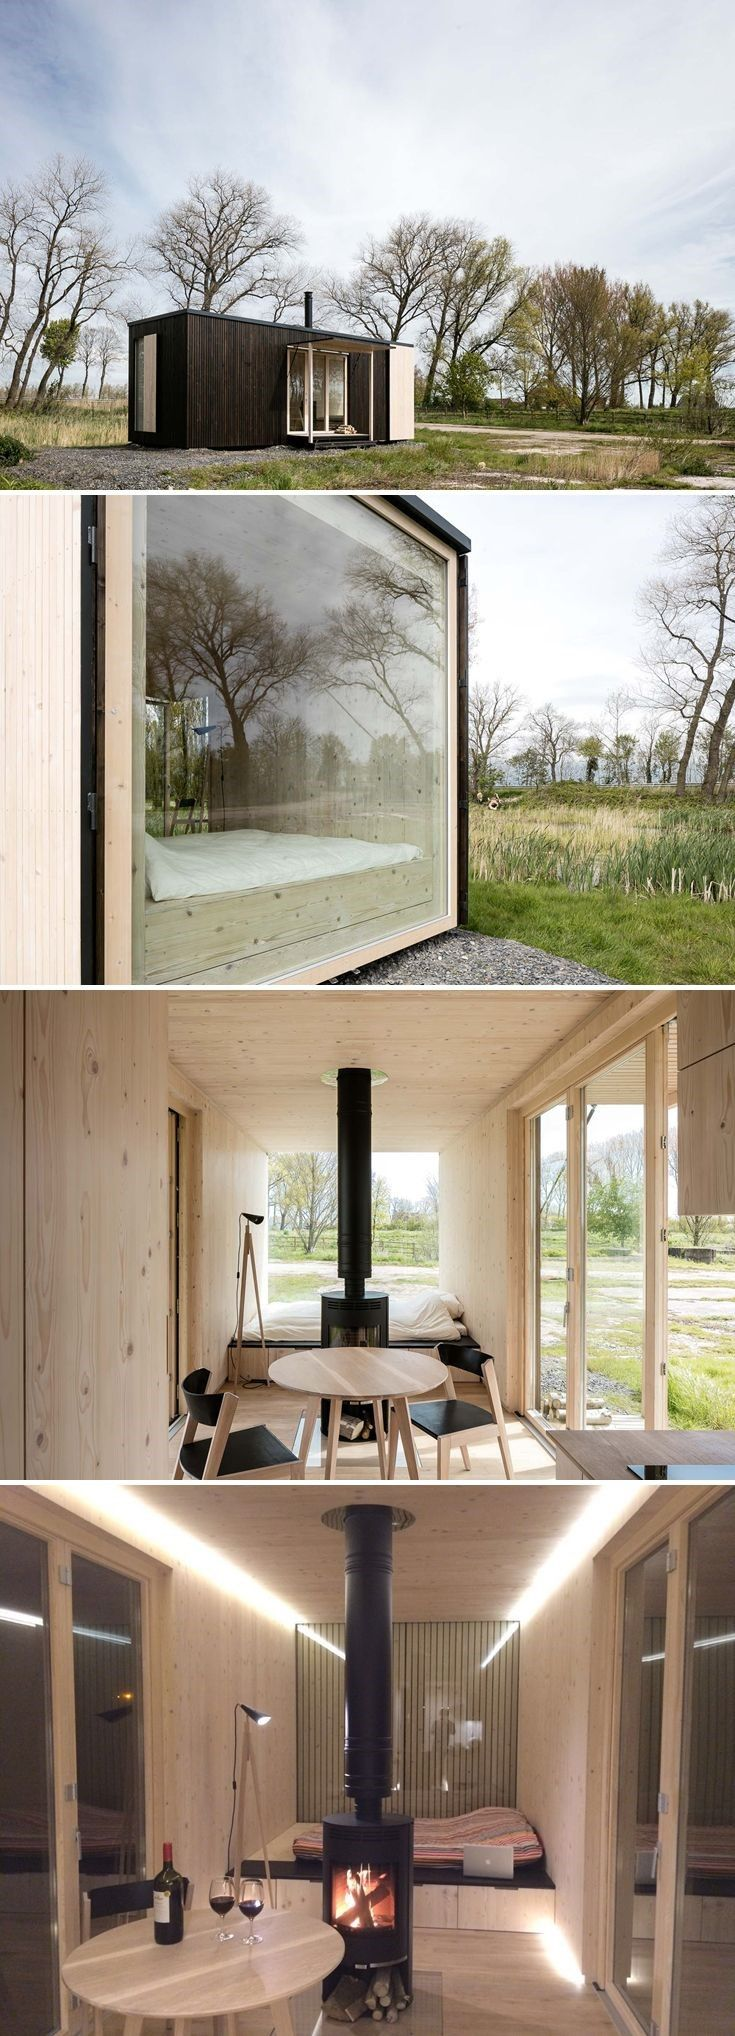 container home designers%0A Container House  The Belgian tiny house  Ark Shelter  is a sleek  minimalist tiny house with a full wall window on one end and large  accordion doors that